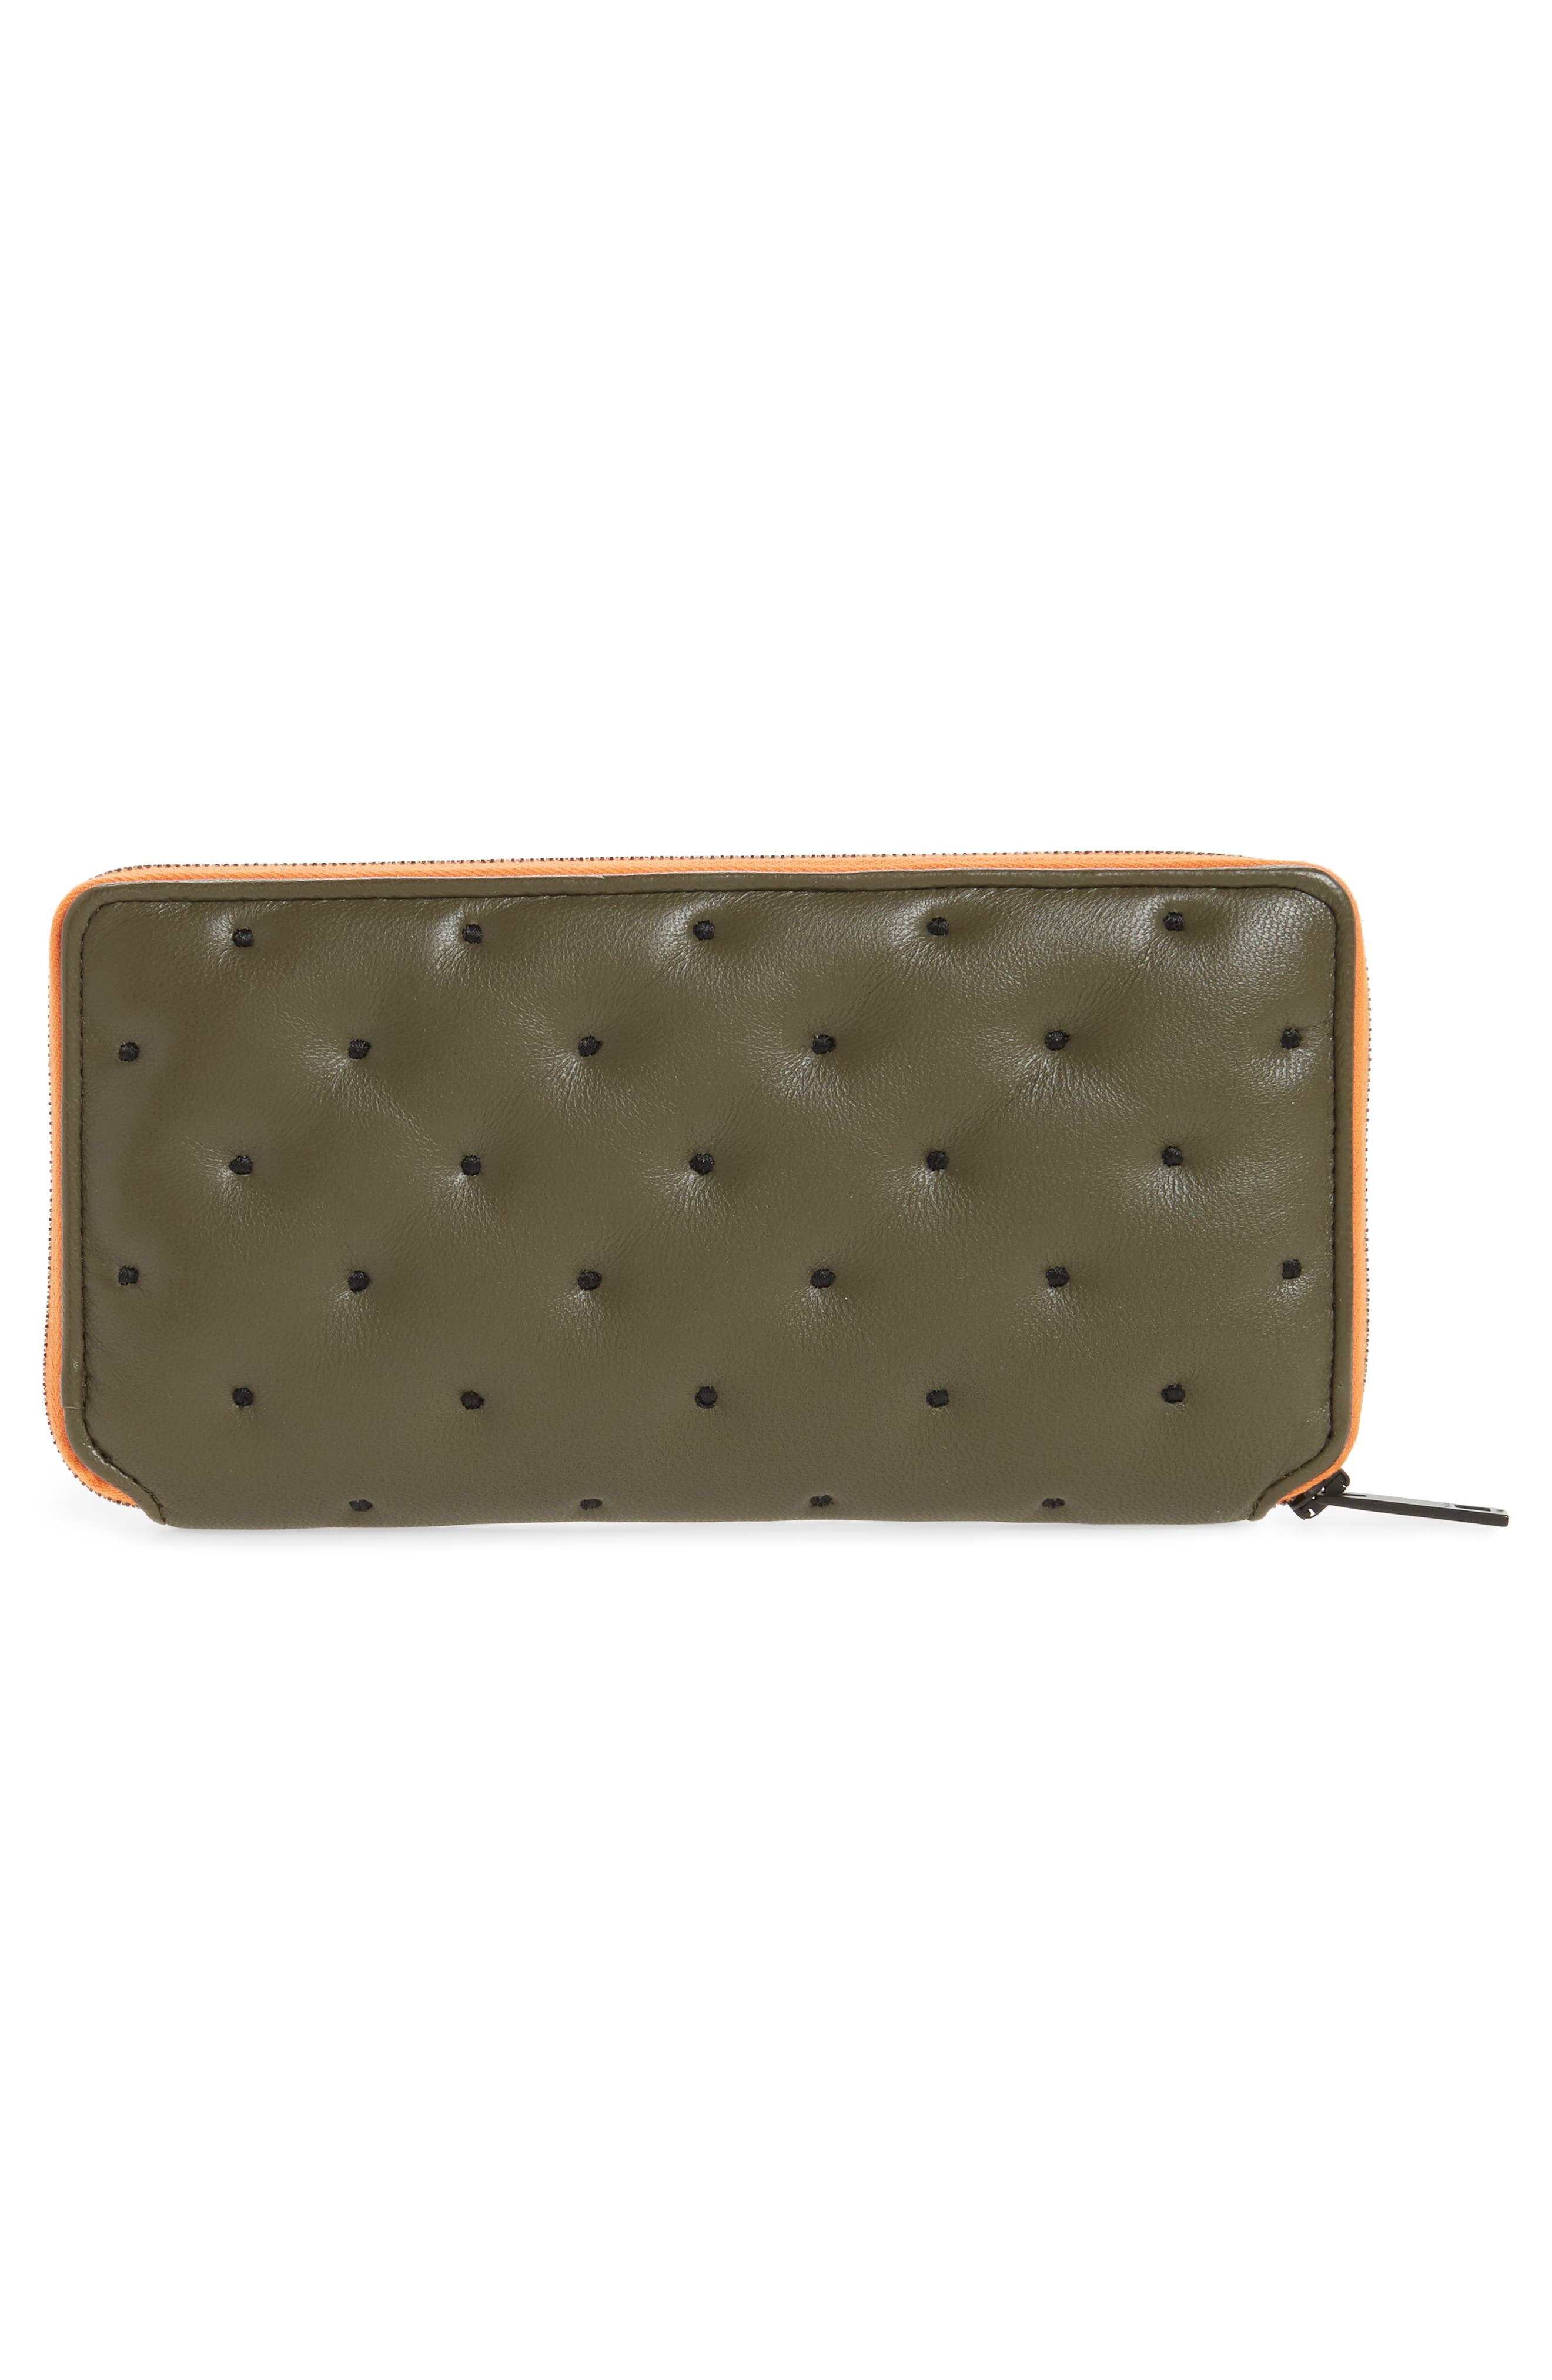 Dot Dash Quilted Leather Zip Around Wallet,                             Alternate thumbnail 3, color,                             388